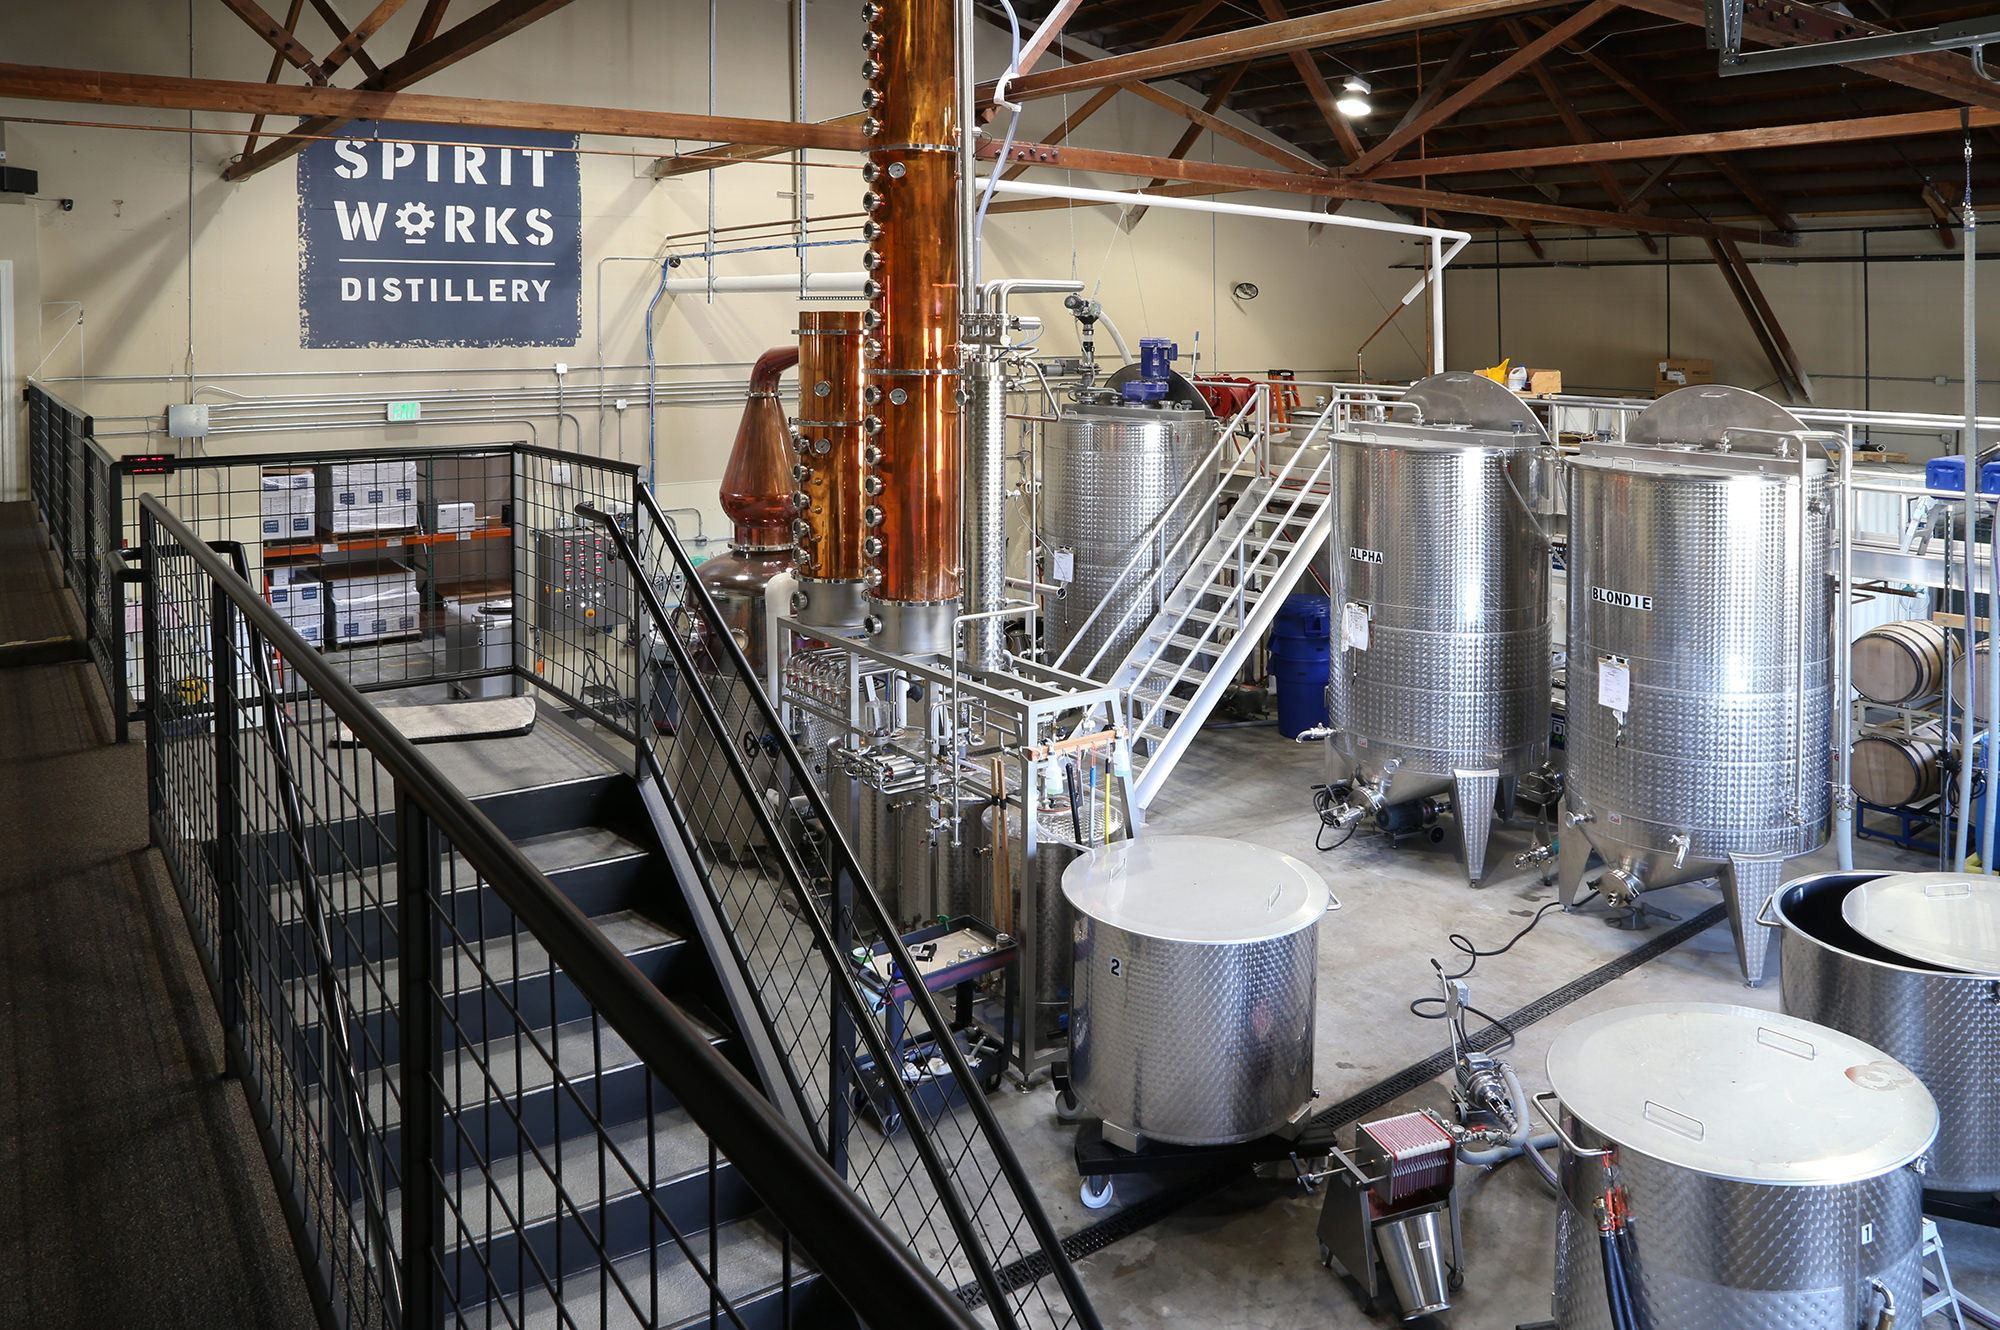 Spirit Works Distillery in the Barlow